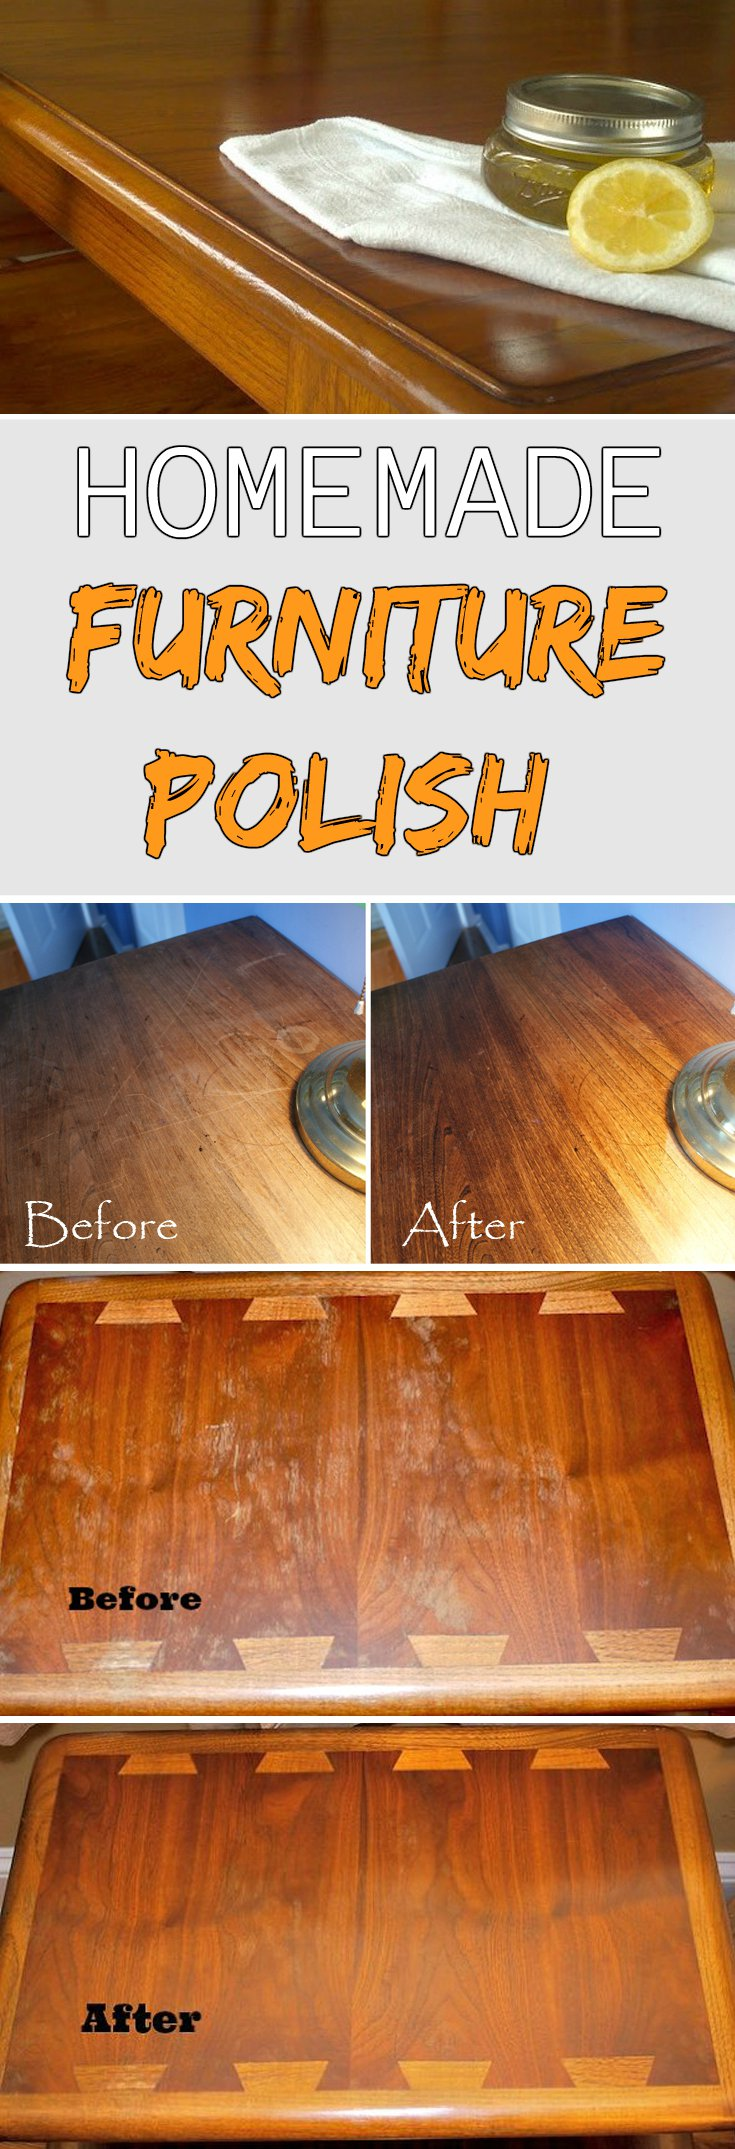 Homemade Furniture Polish Mycleaningsolutions Com